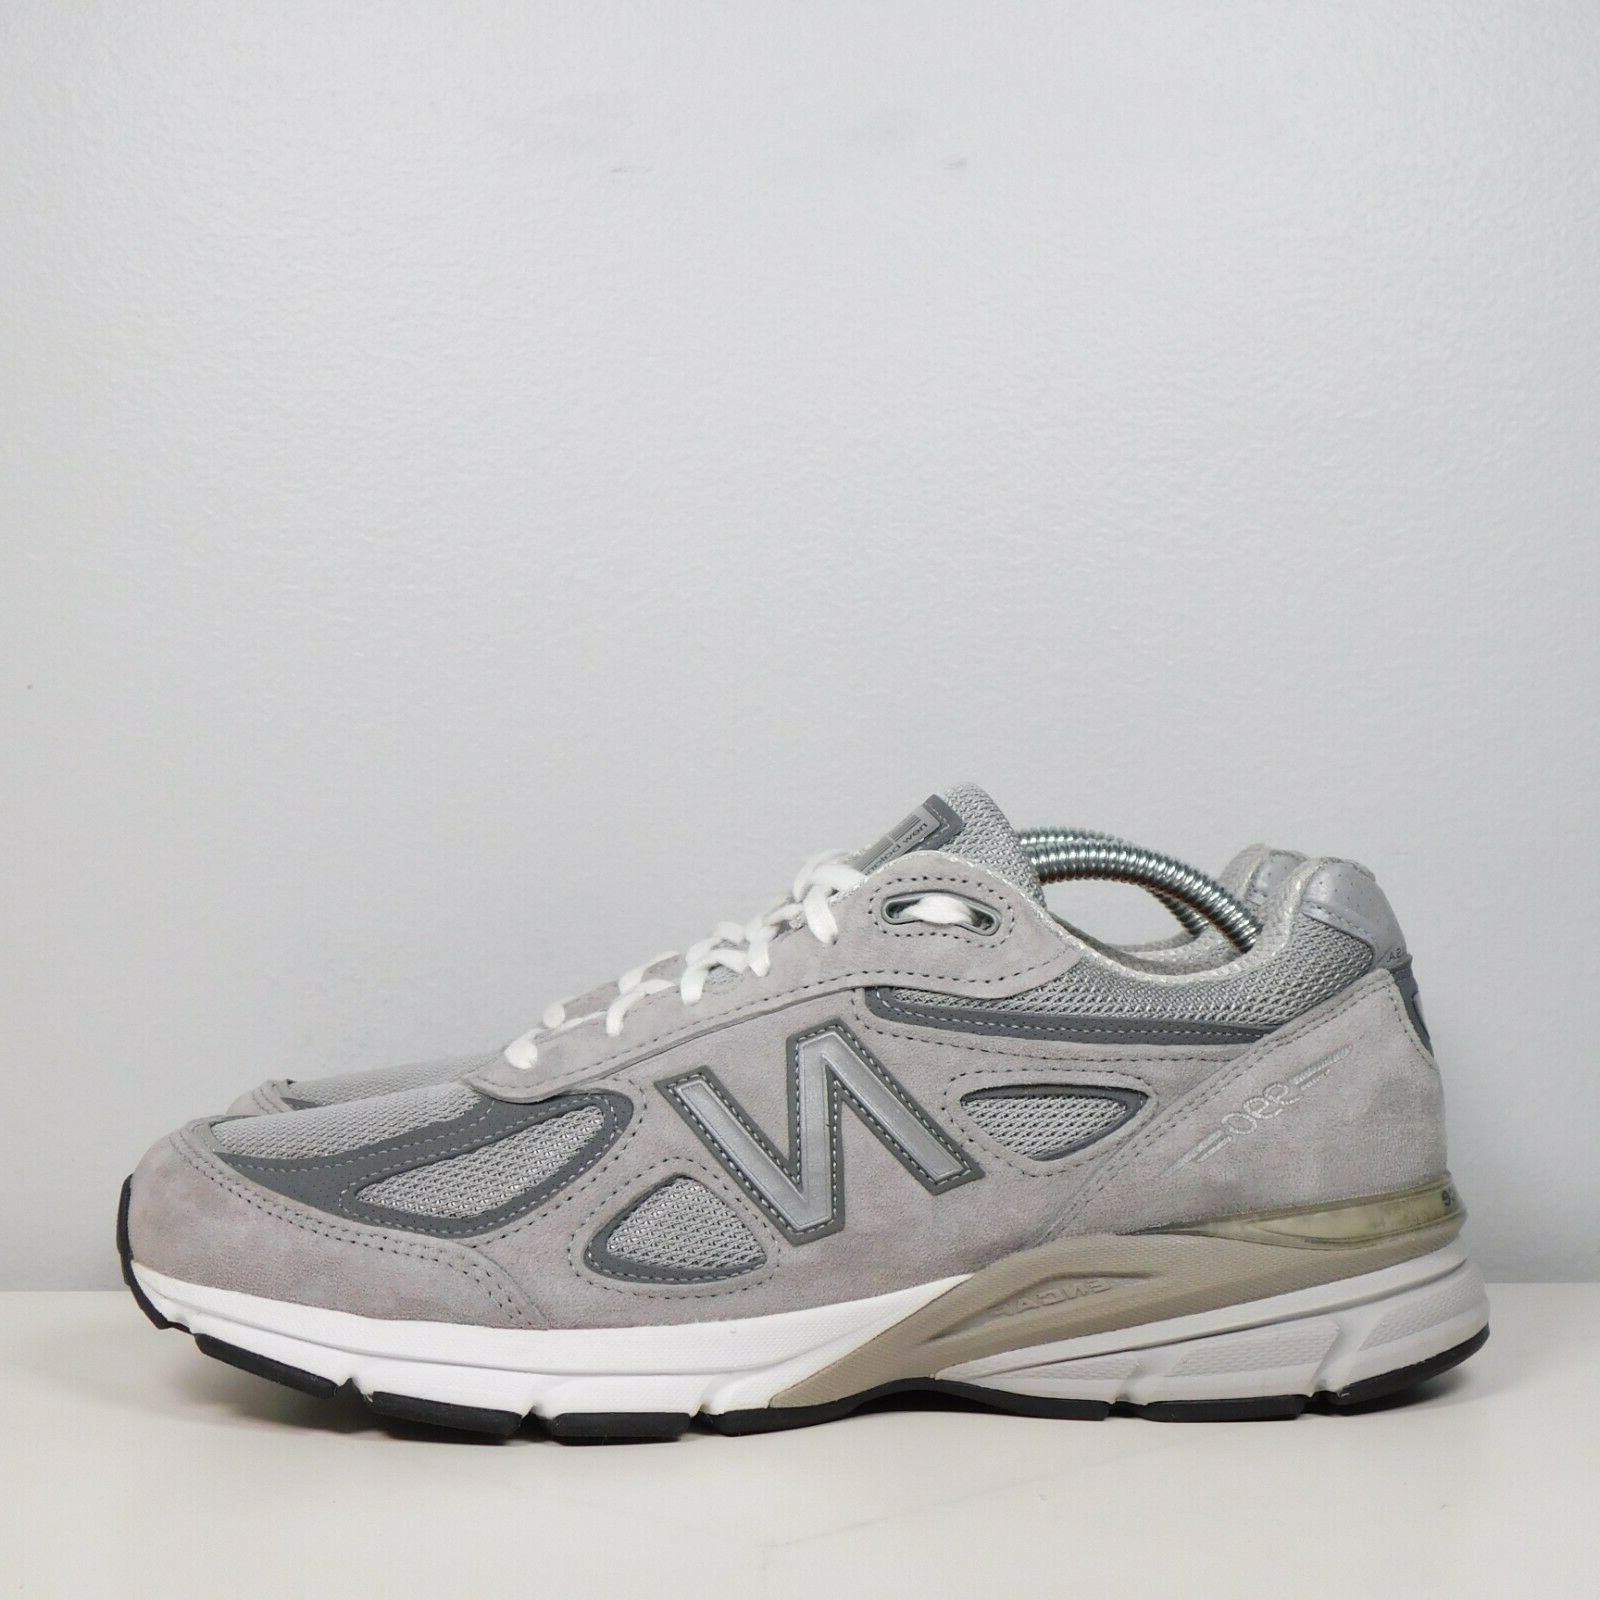 New Sneakers Gray Shoes M990GL4 9.5